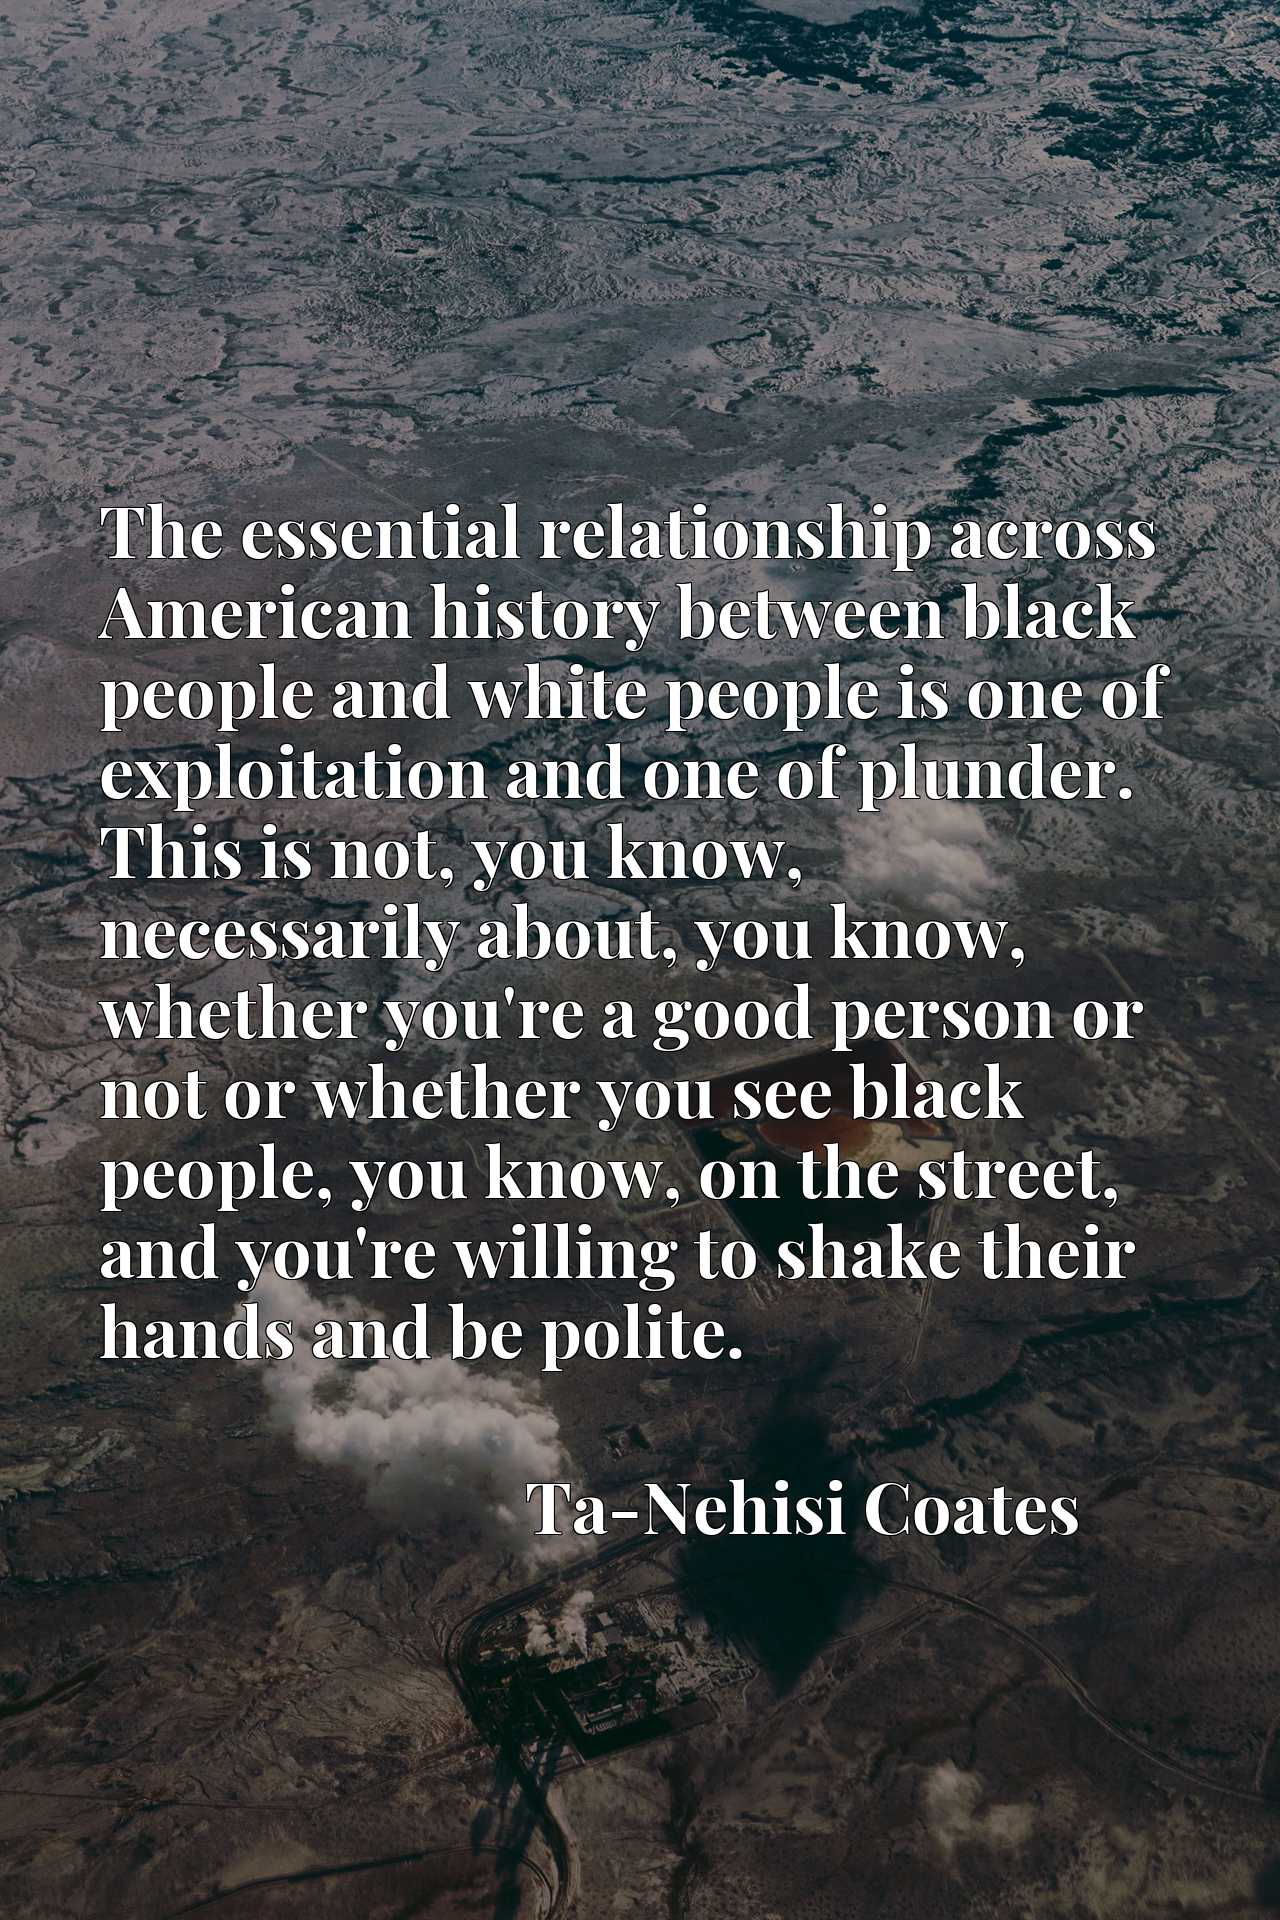 The essential relationship across American history between black people and white people is one of exploitation and one of plunder. This is not, you know, necessarily about, you know, whether you're a good person or not or whether you see black people, you know, on the street, and you're willing to shake their hands and be polite.